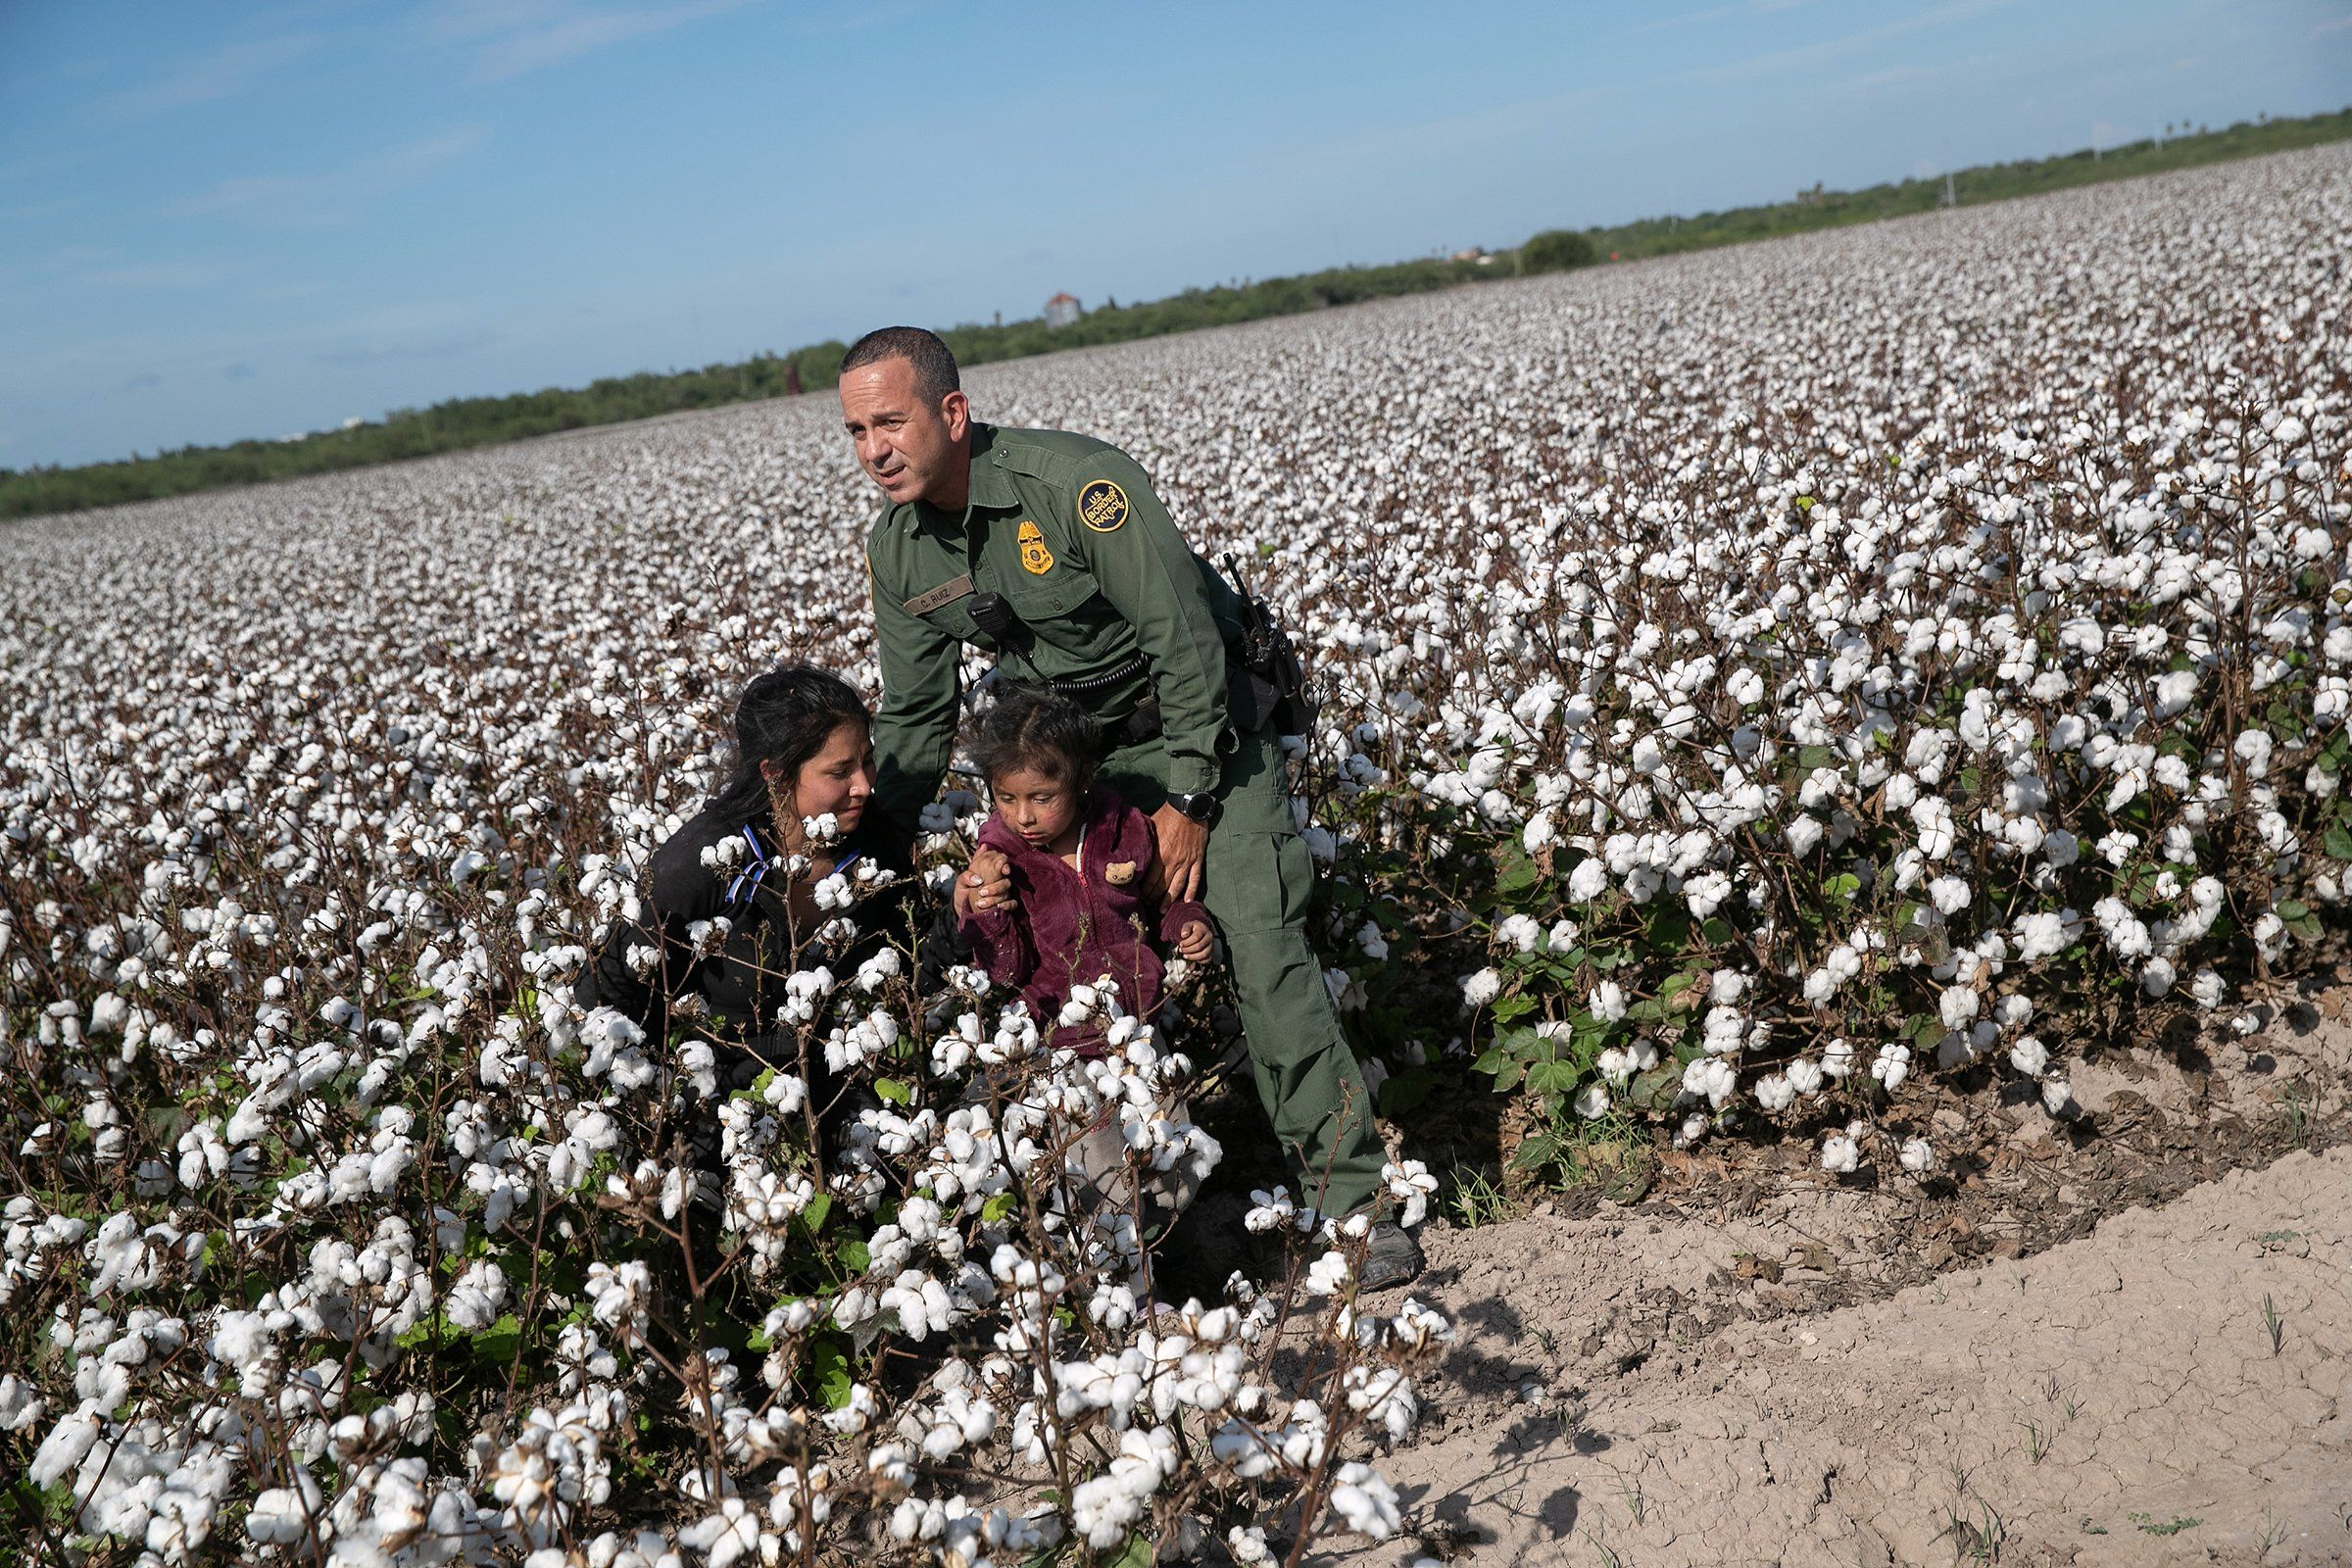 U.S. Border Patrol agent Carlos Ruiz apprehends a mother and daughter from Ecuador in Penitas, Texas, on Sept. 10. The undocumented immigrants had been hiding for hours in a cotton field after border agents detected and chased their group earlier in the day.